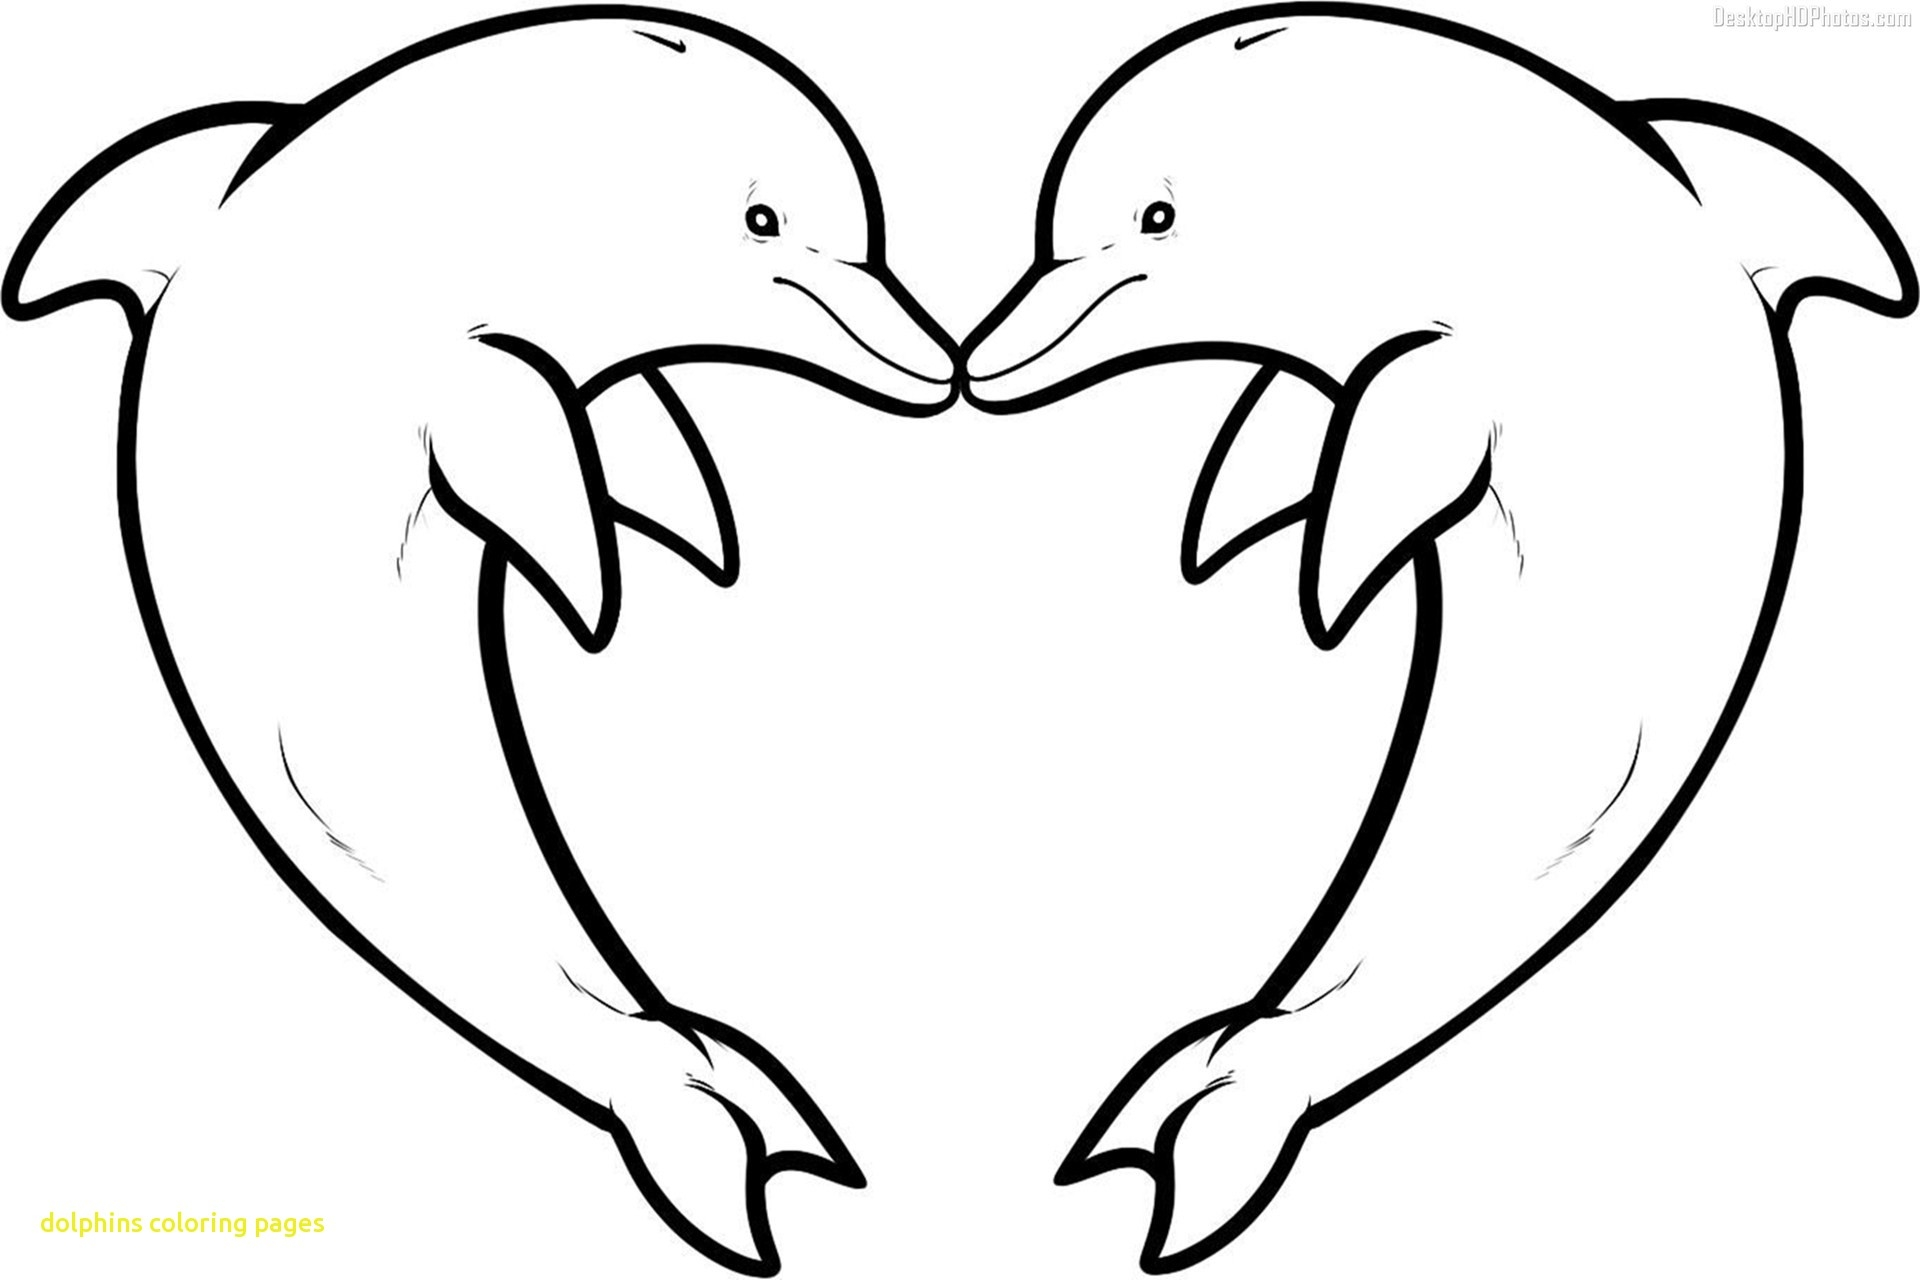 1920x1280 Monumental Printable Dolphin Pictures Free Clipart Coloring Pages